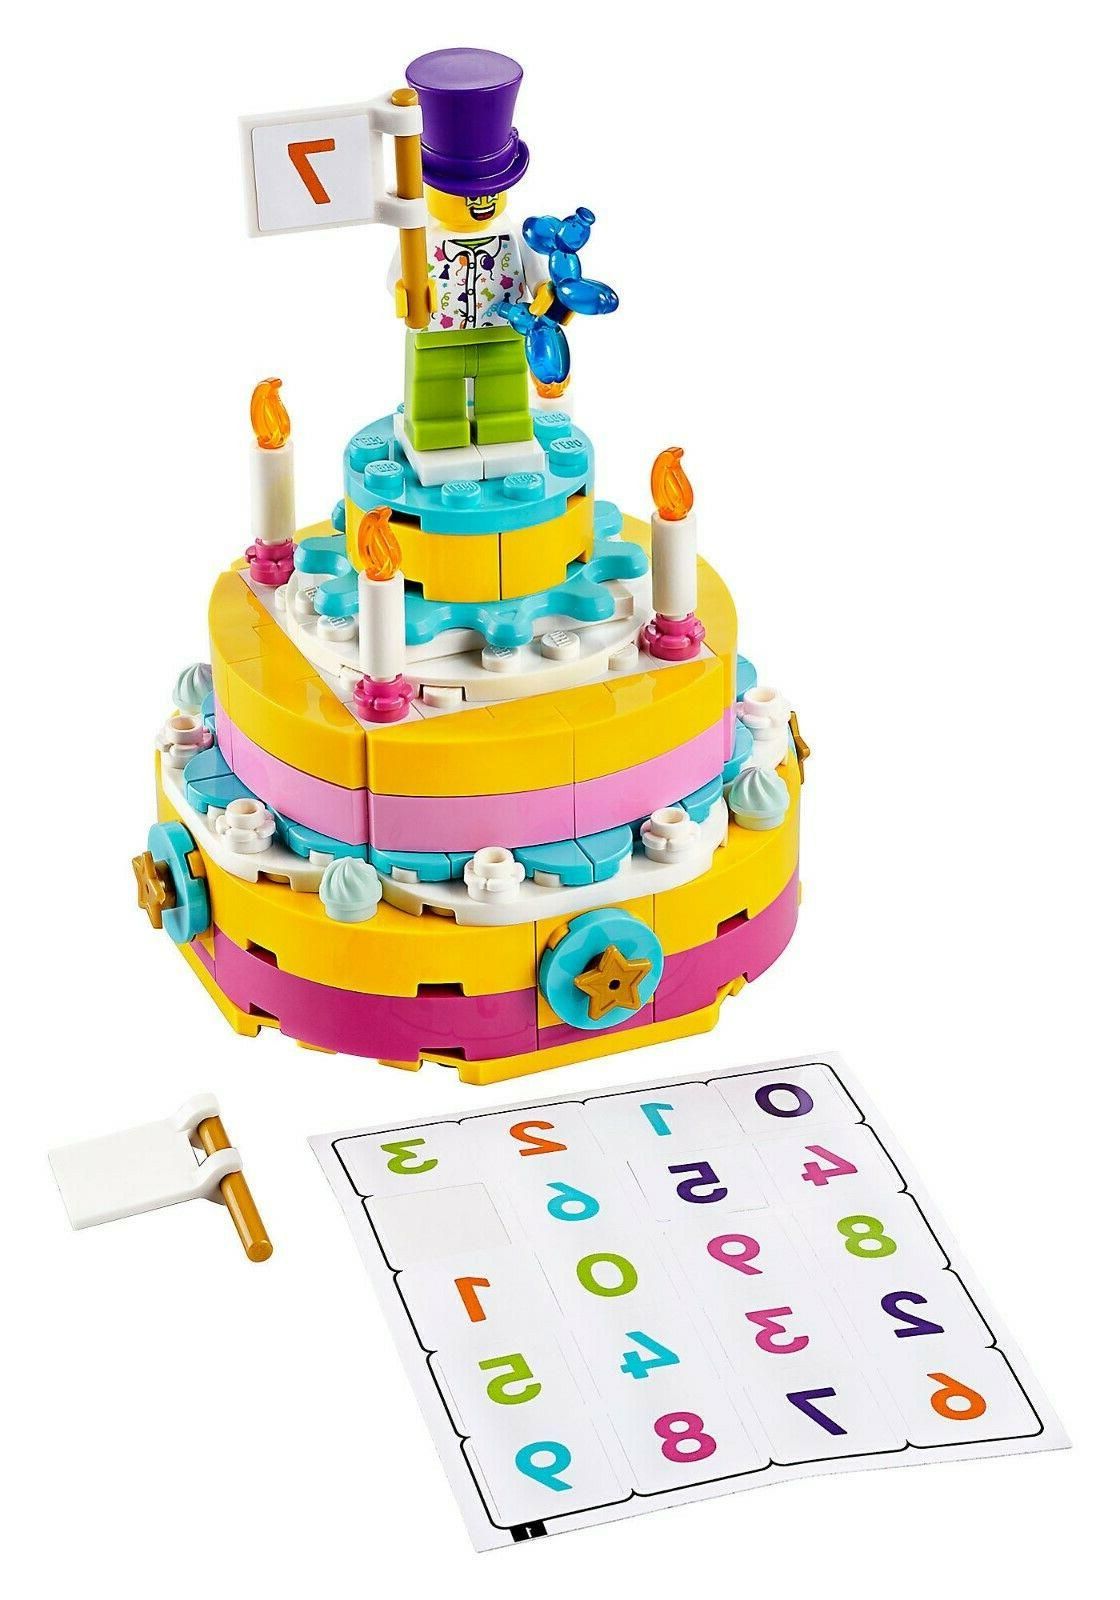 Lego 40382 Birthday Cake Table Building Set NEW